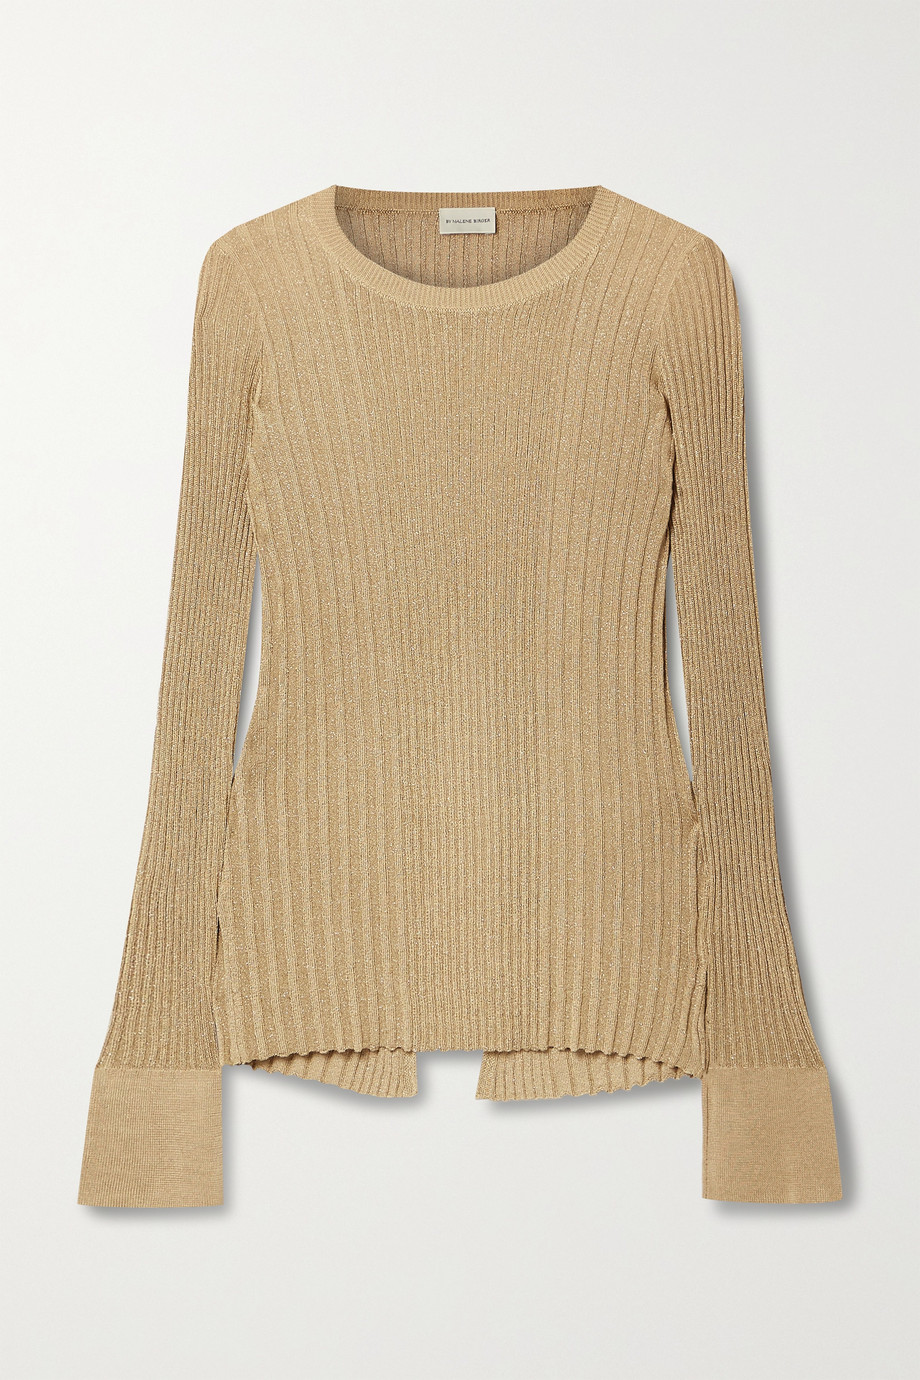 BY MALENE BIRGER Orlia metallic ribbed-knit top